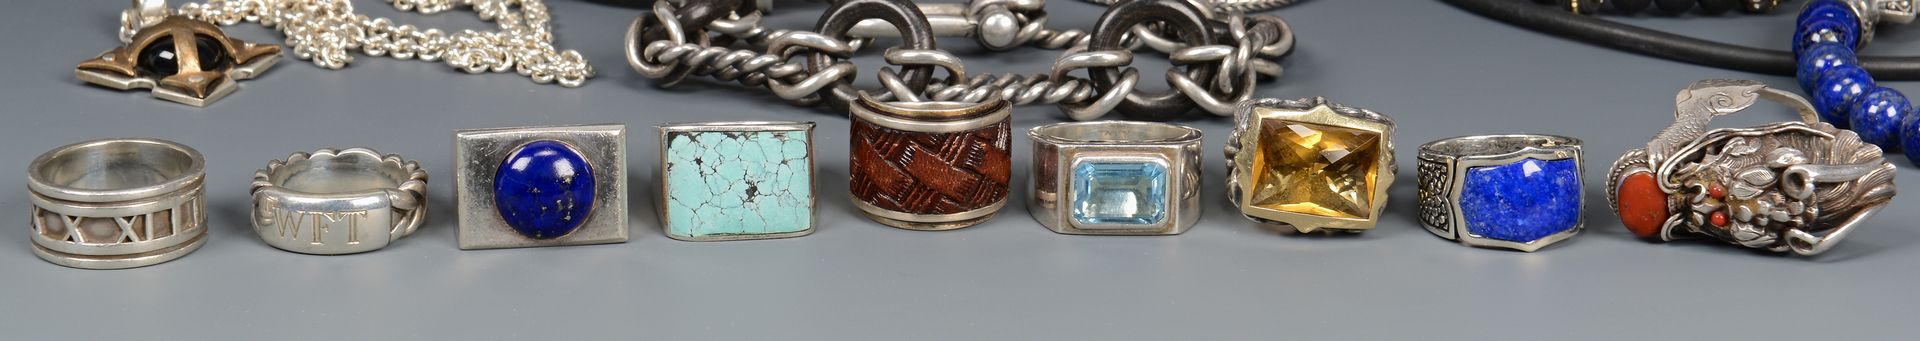 Lot 581: Group of Men's Designer Jewelry